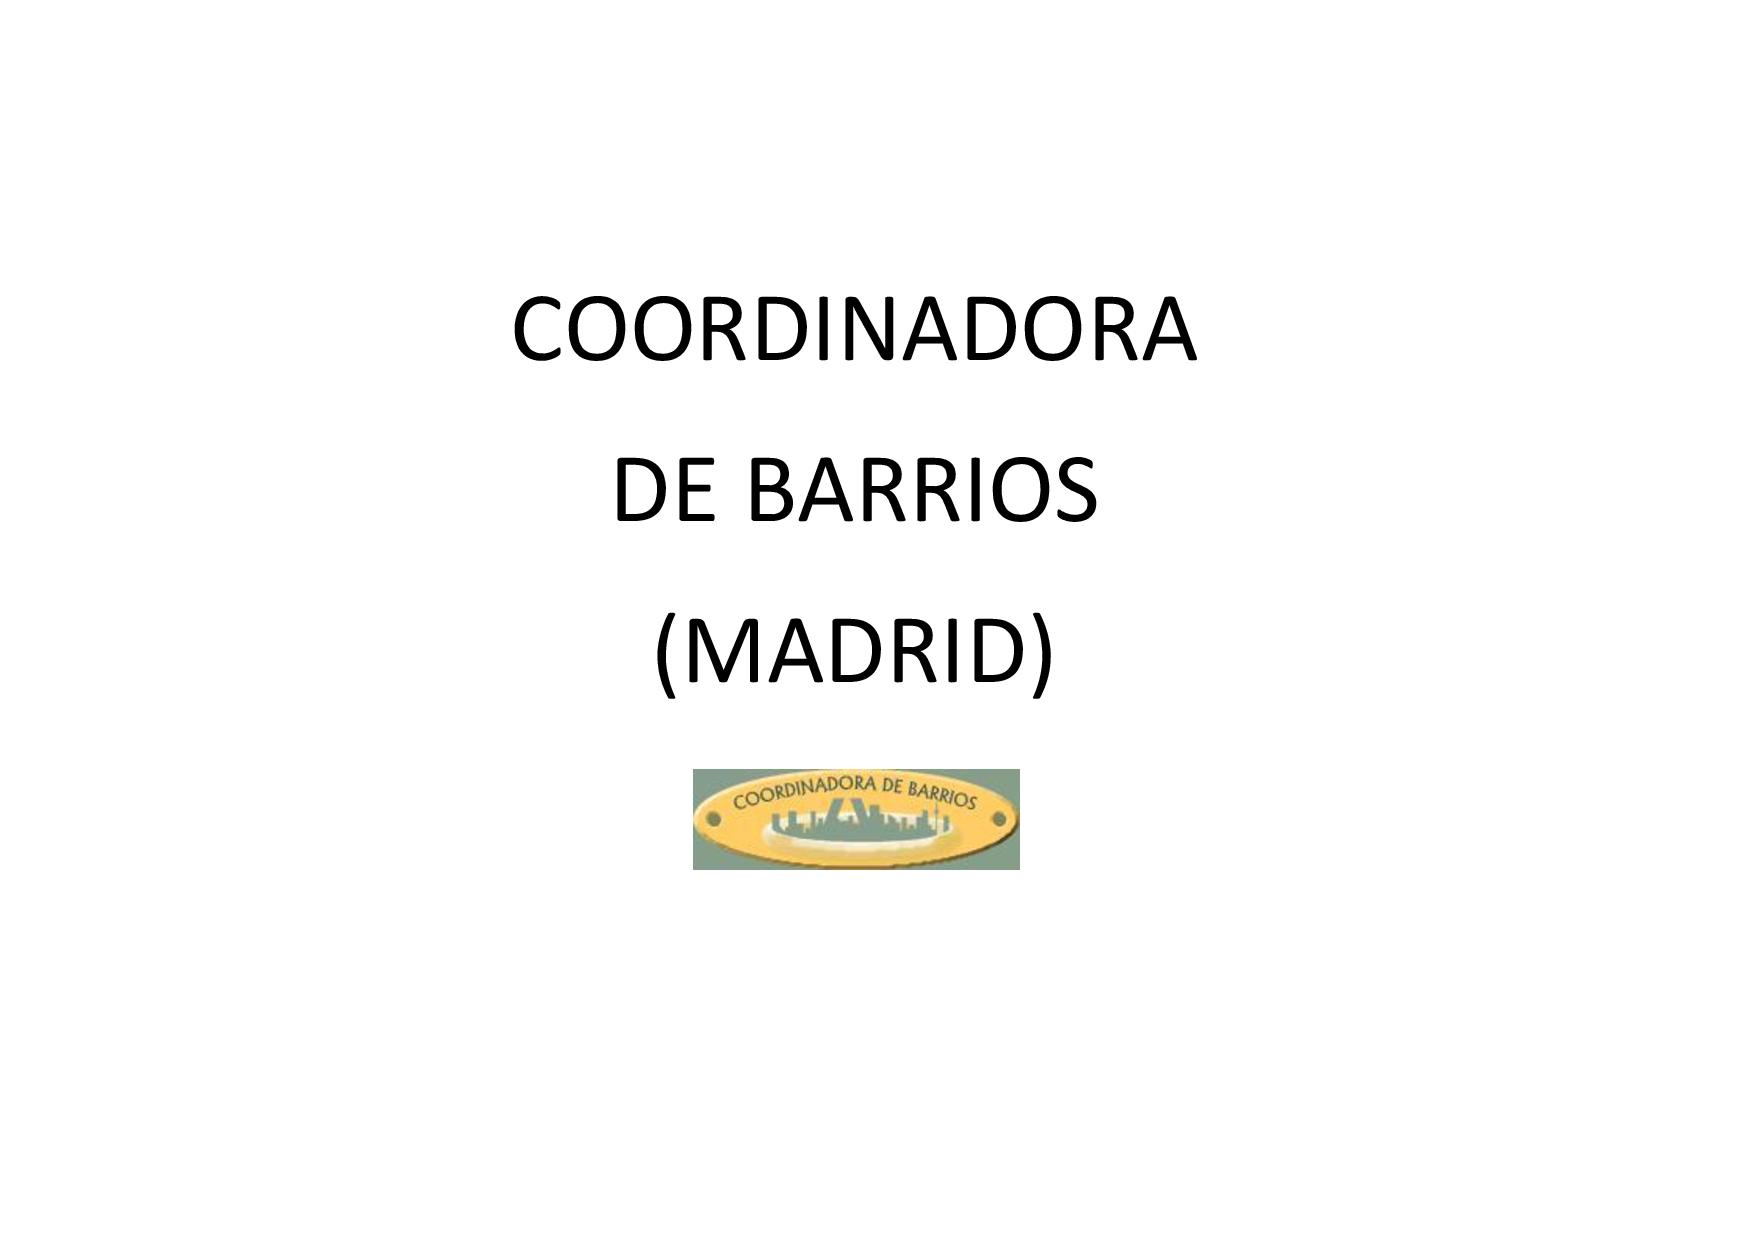 Coordinadora de Barrios (Madrid)